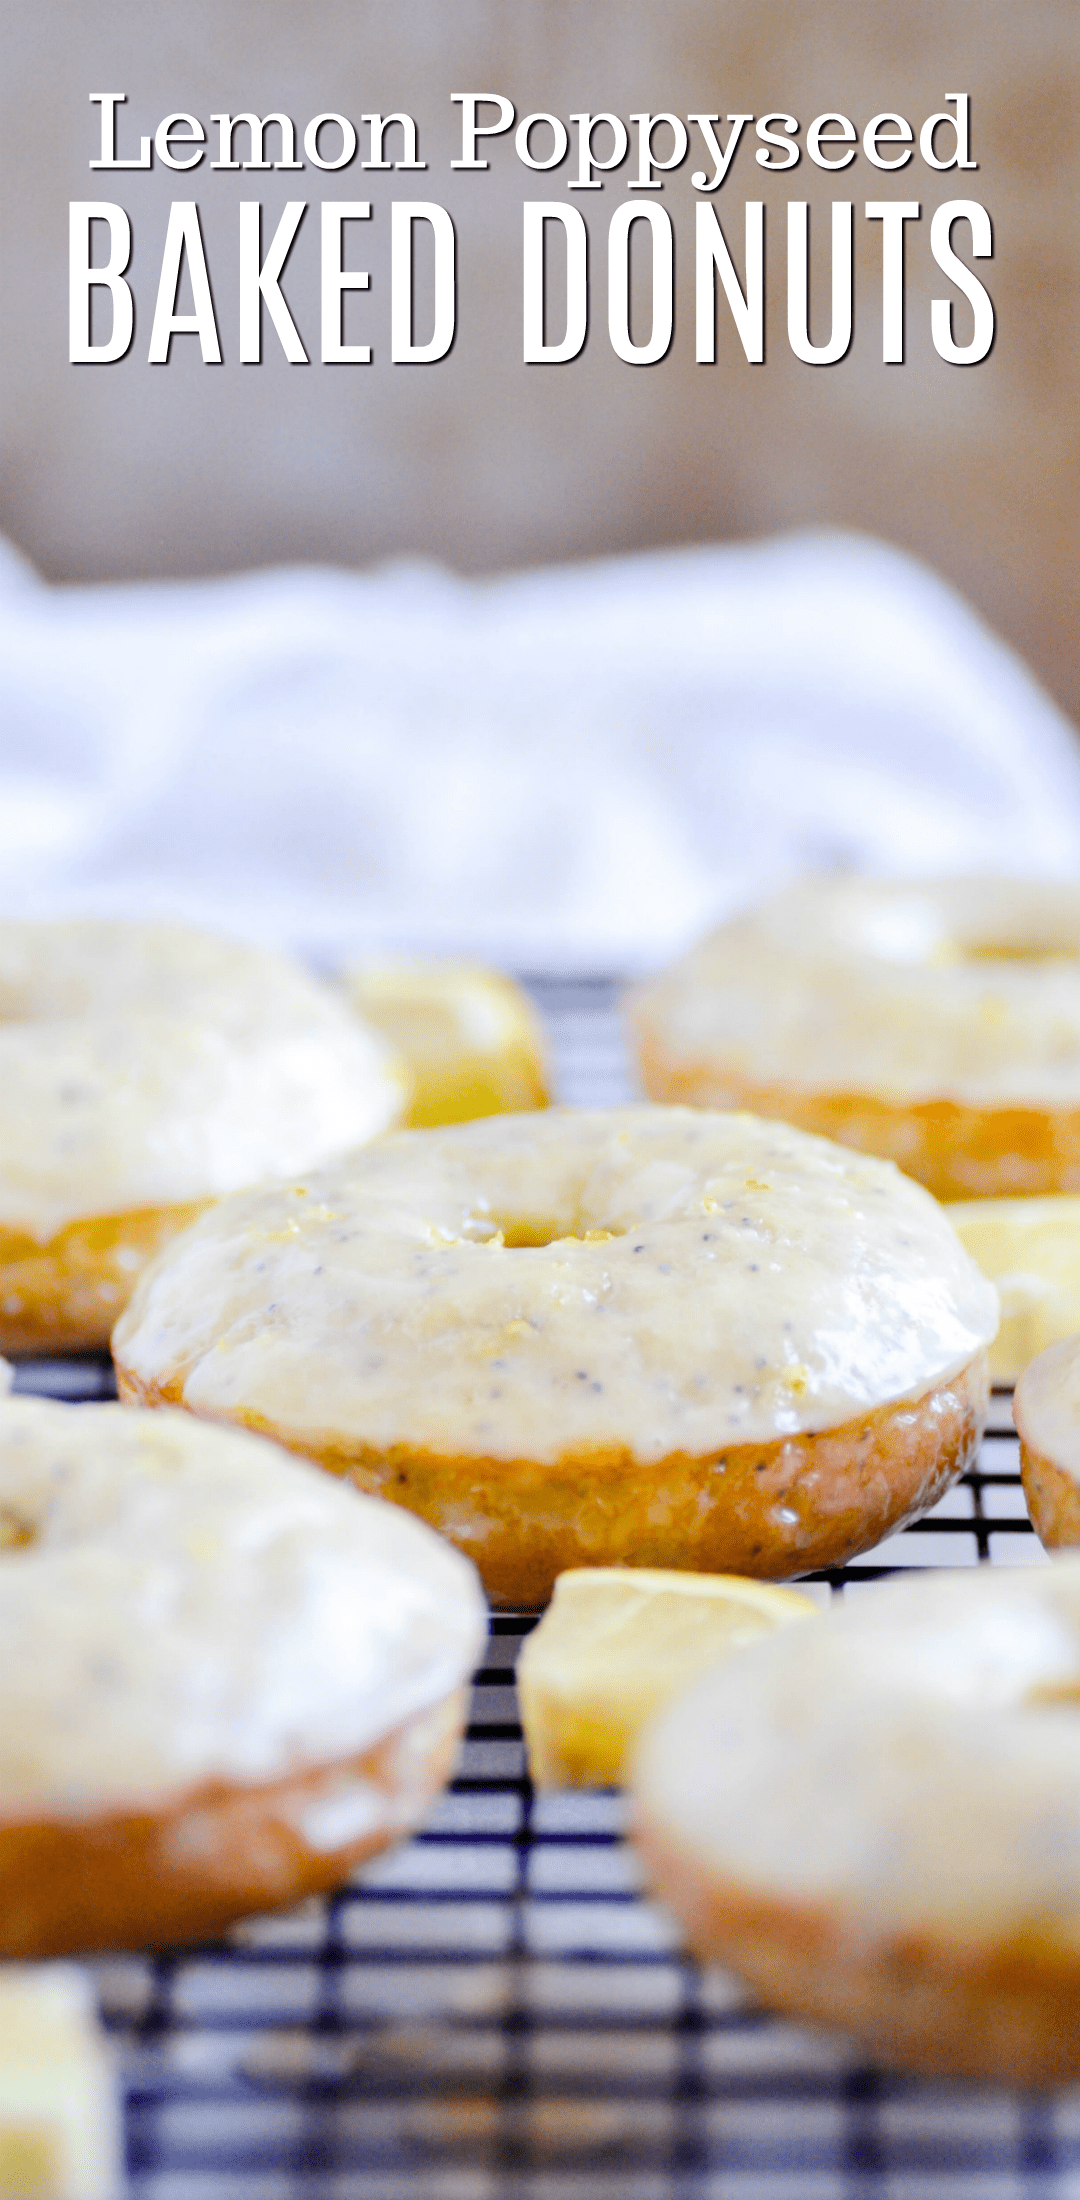 These Baked Lemon Poppyseed Donuts were utterly AMAZING. It's sunny summer perfection in a donut 👌🏻.